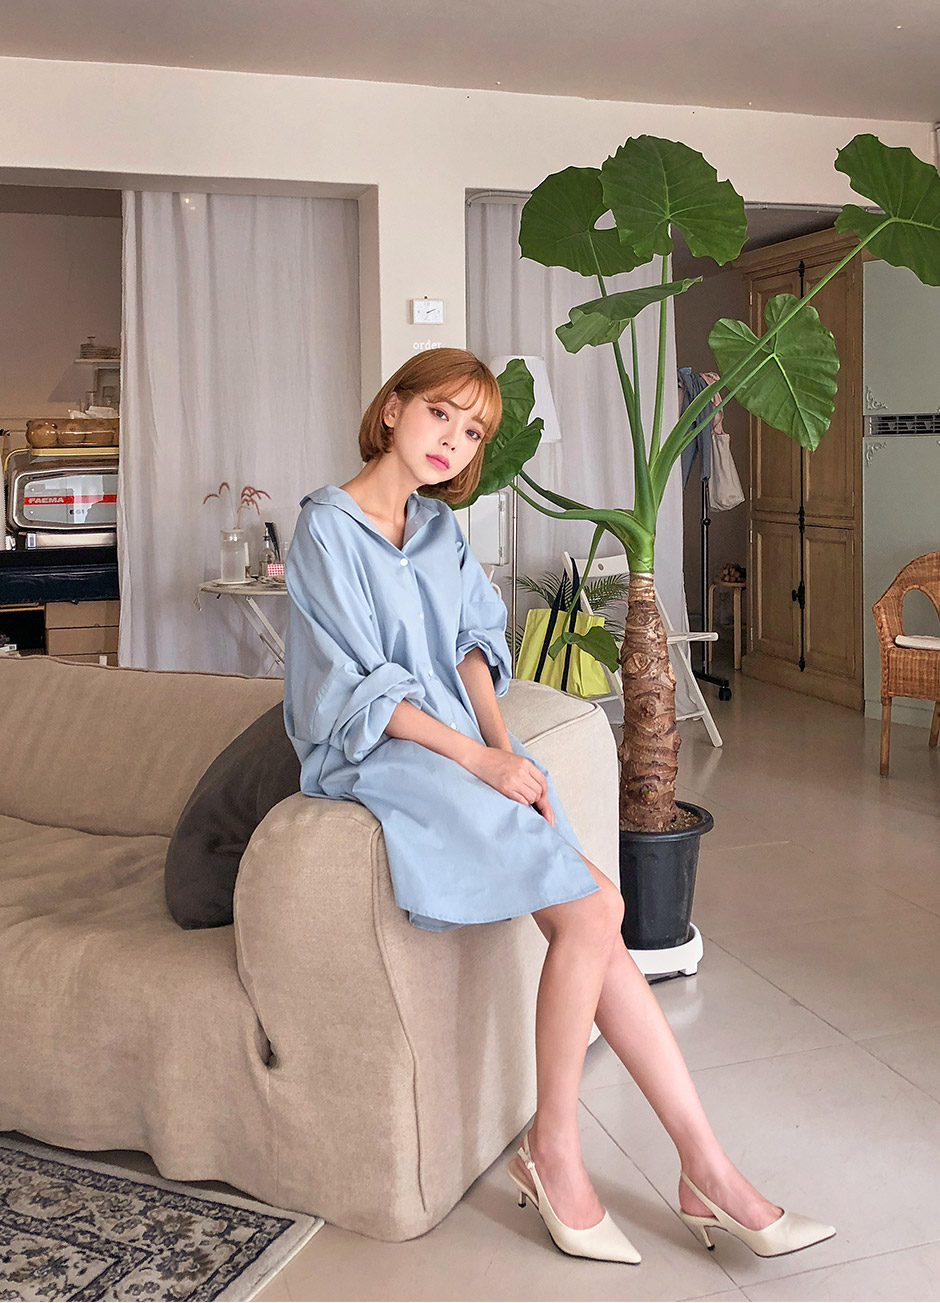 //cdn.nhanh.vn/cdn/store/29770/psCT/20181003/9325619/_CHUU_MADE__Cotton_Long_Shirt_(32).jpg